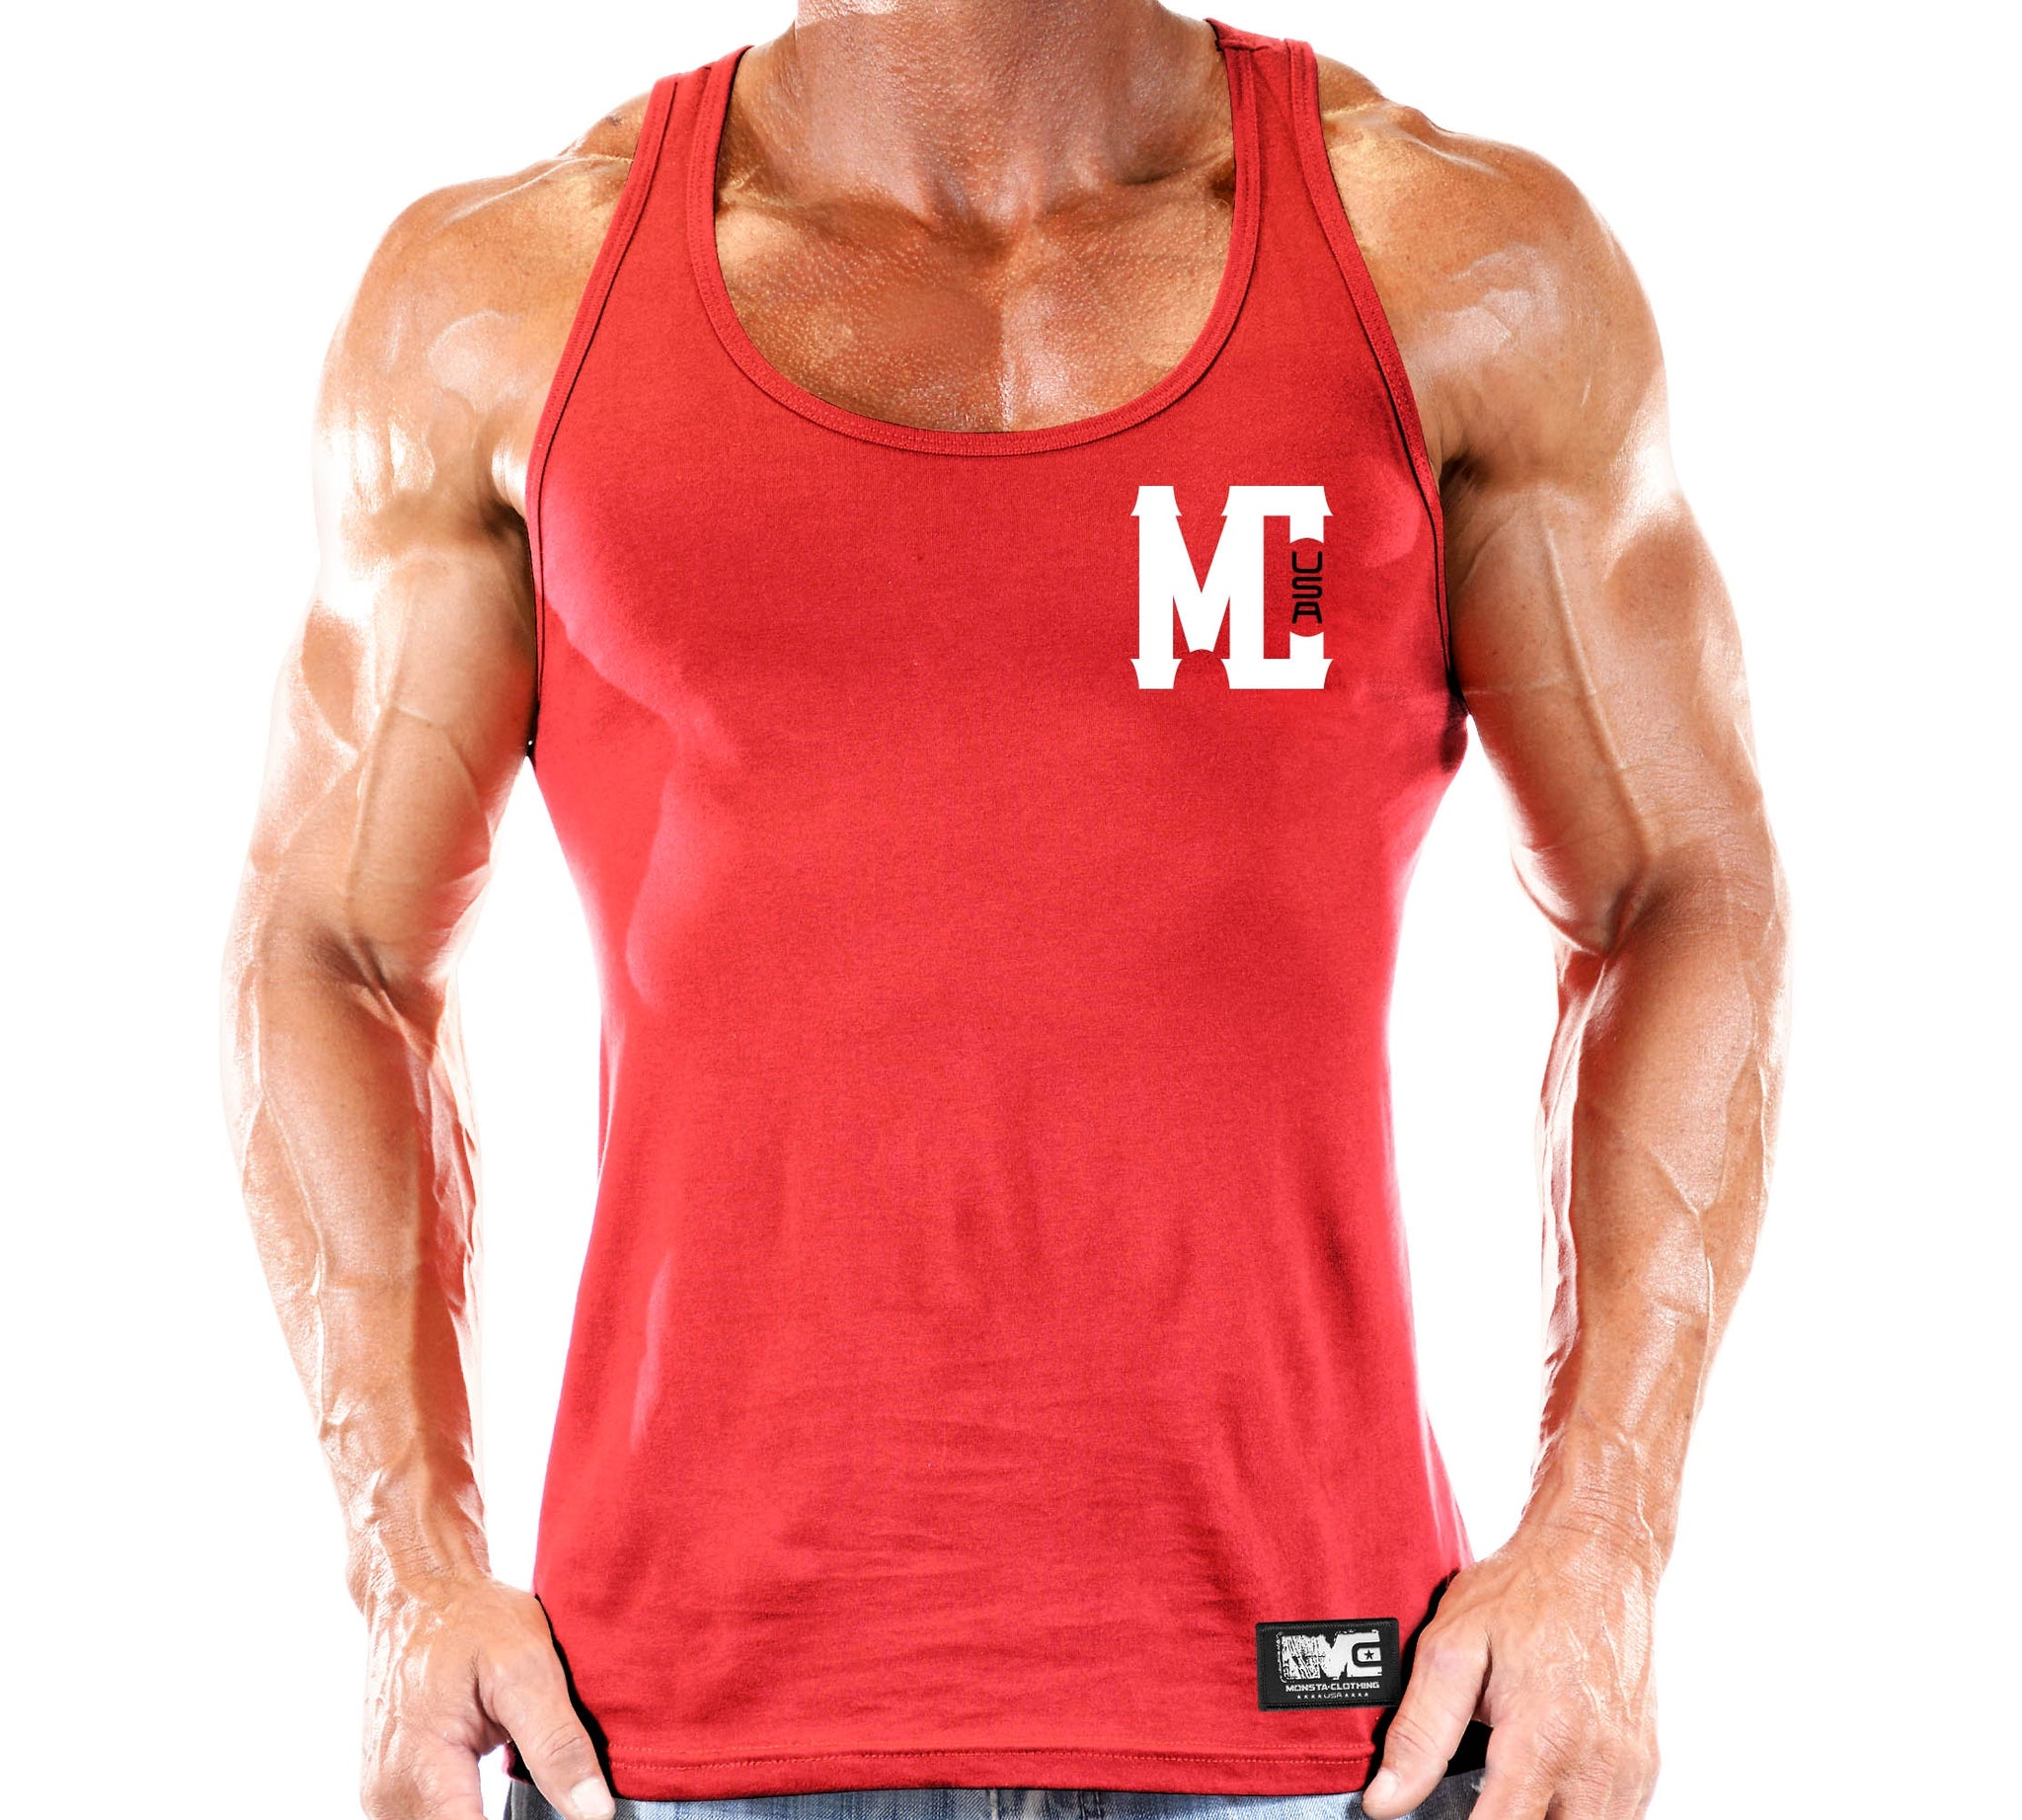 MC USA TANK - Monsta Clothing Australia